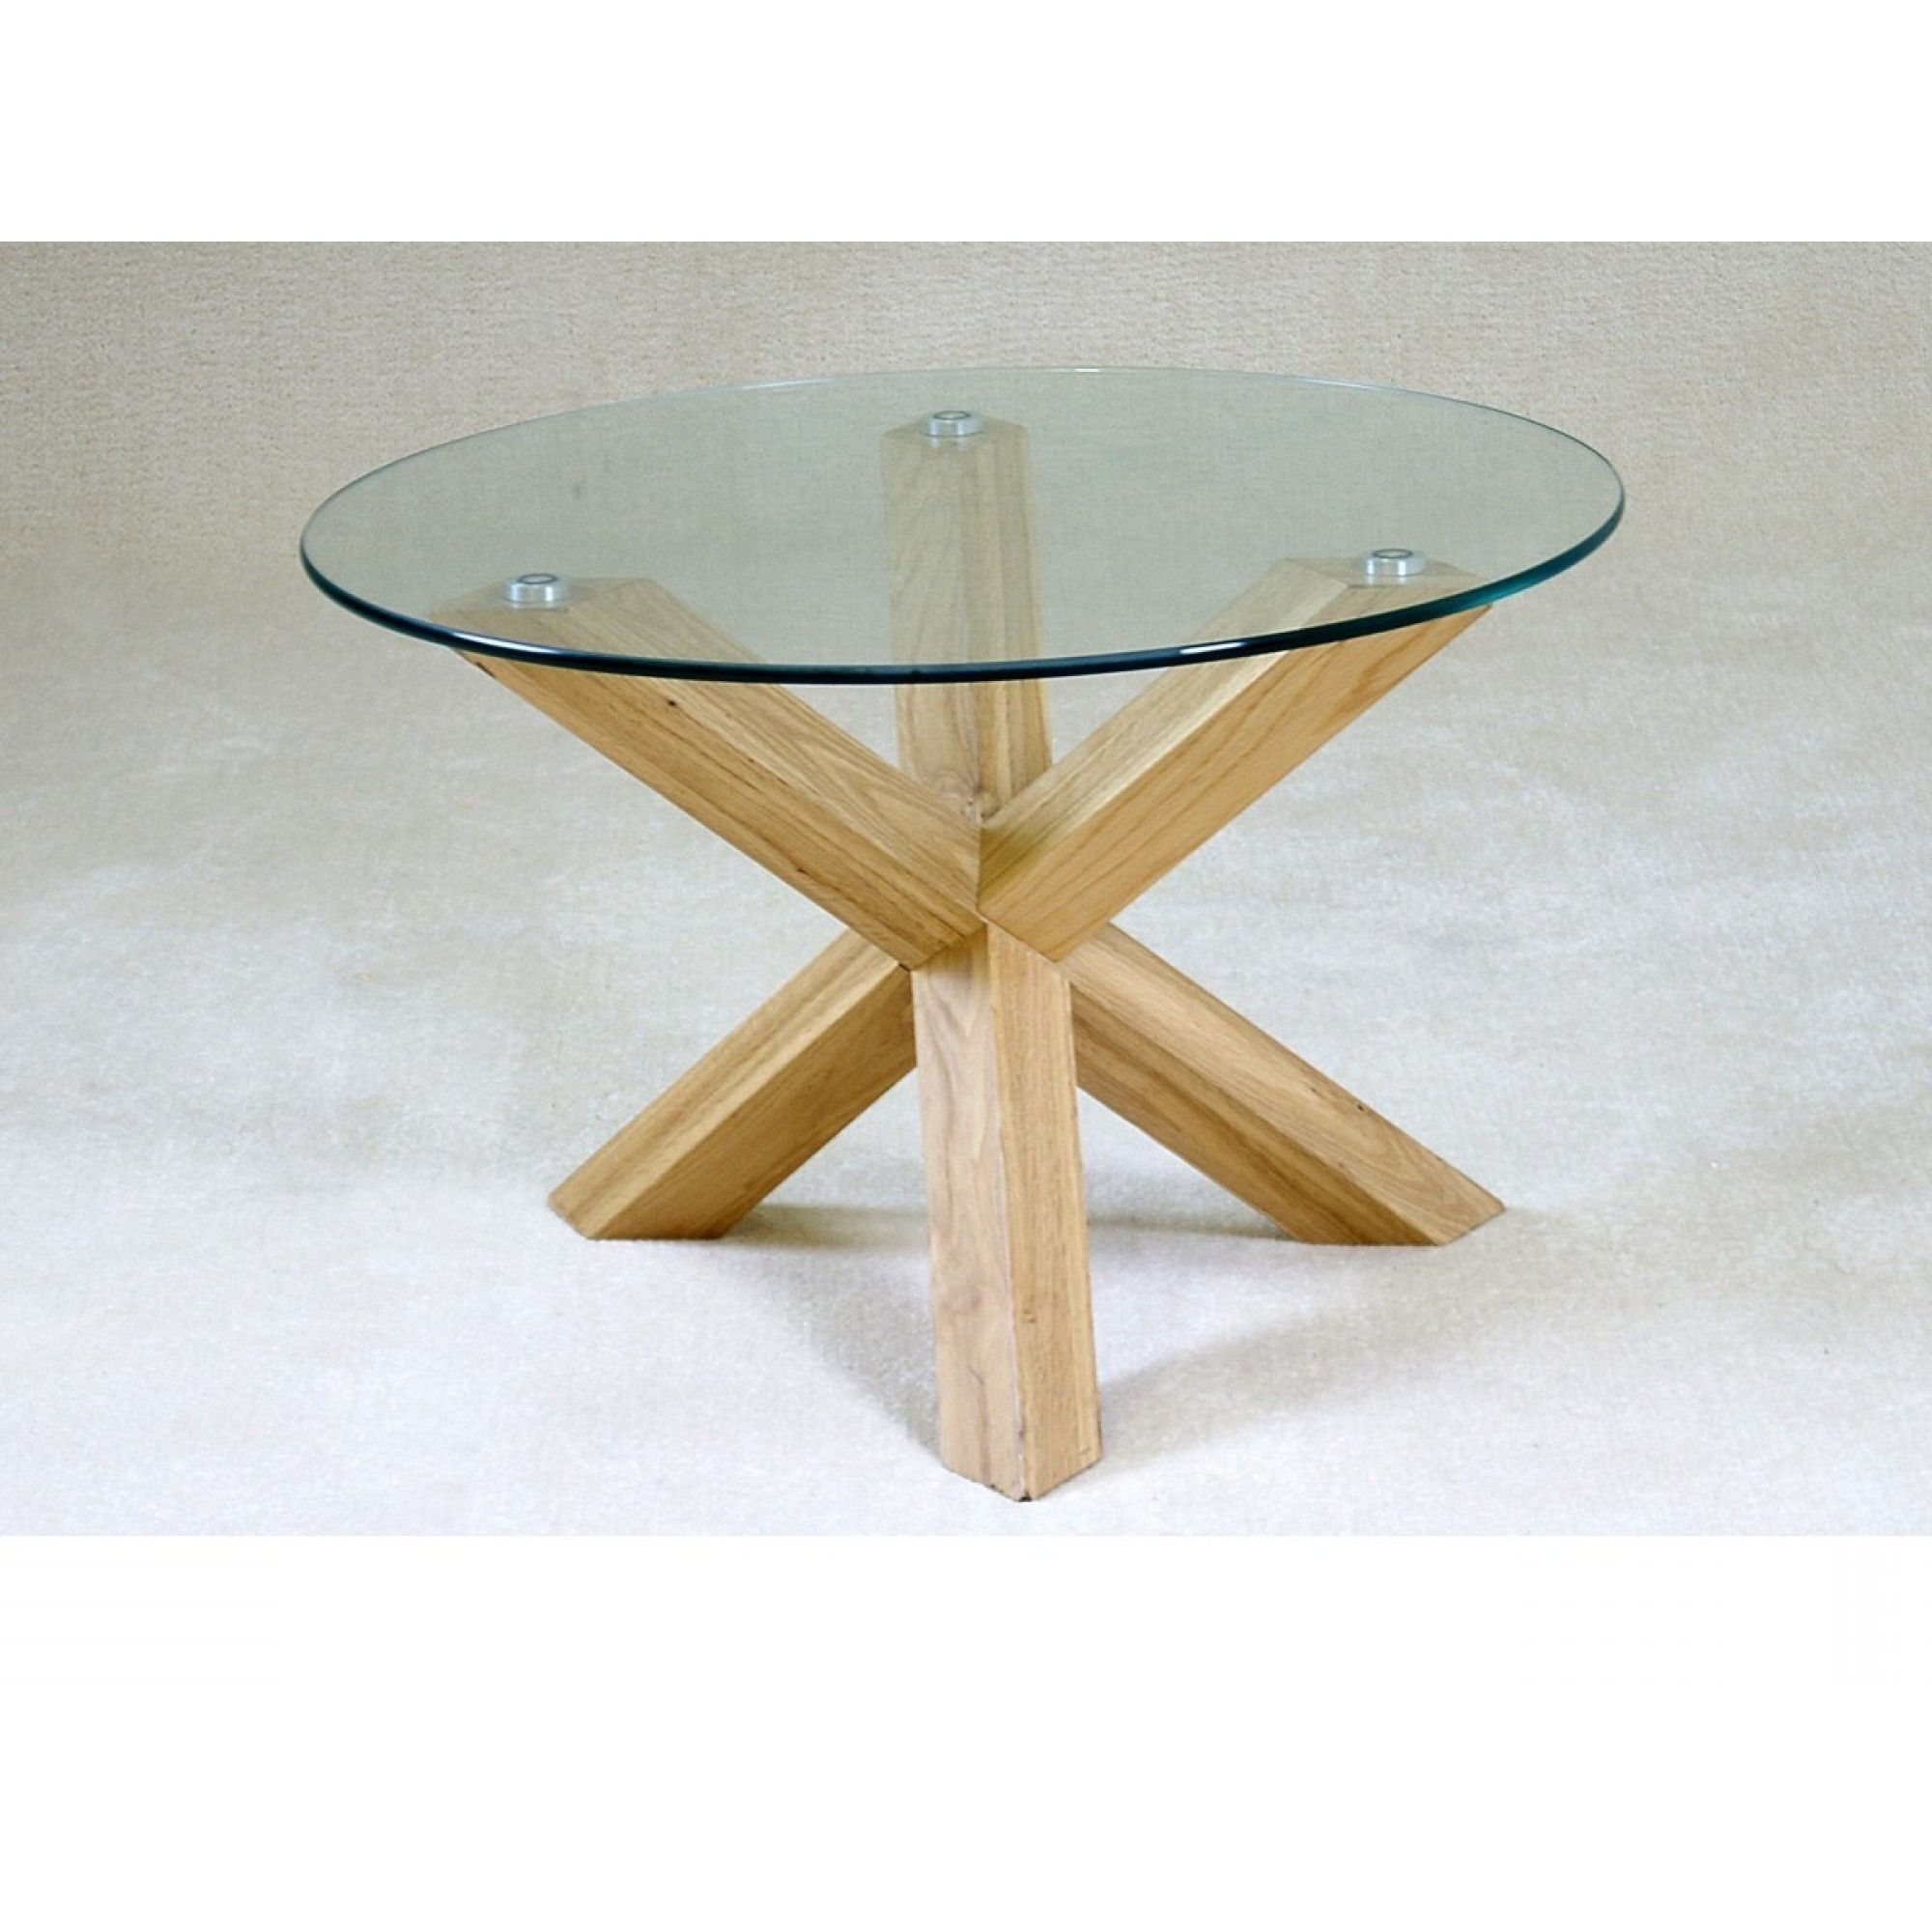 Table, Round Regarding Glass Dining Tables With Oak Legs (View 9 of 25)